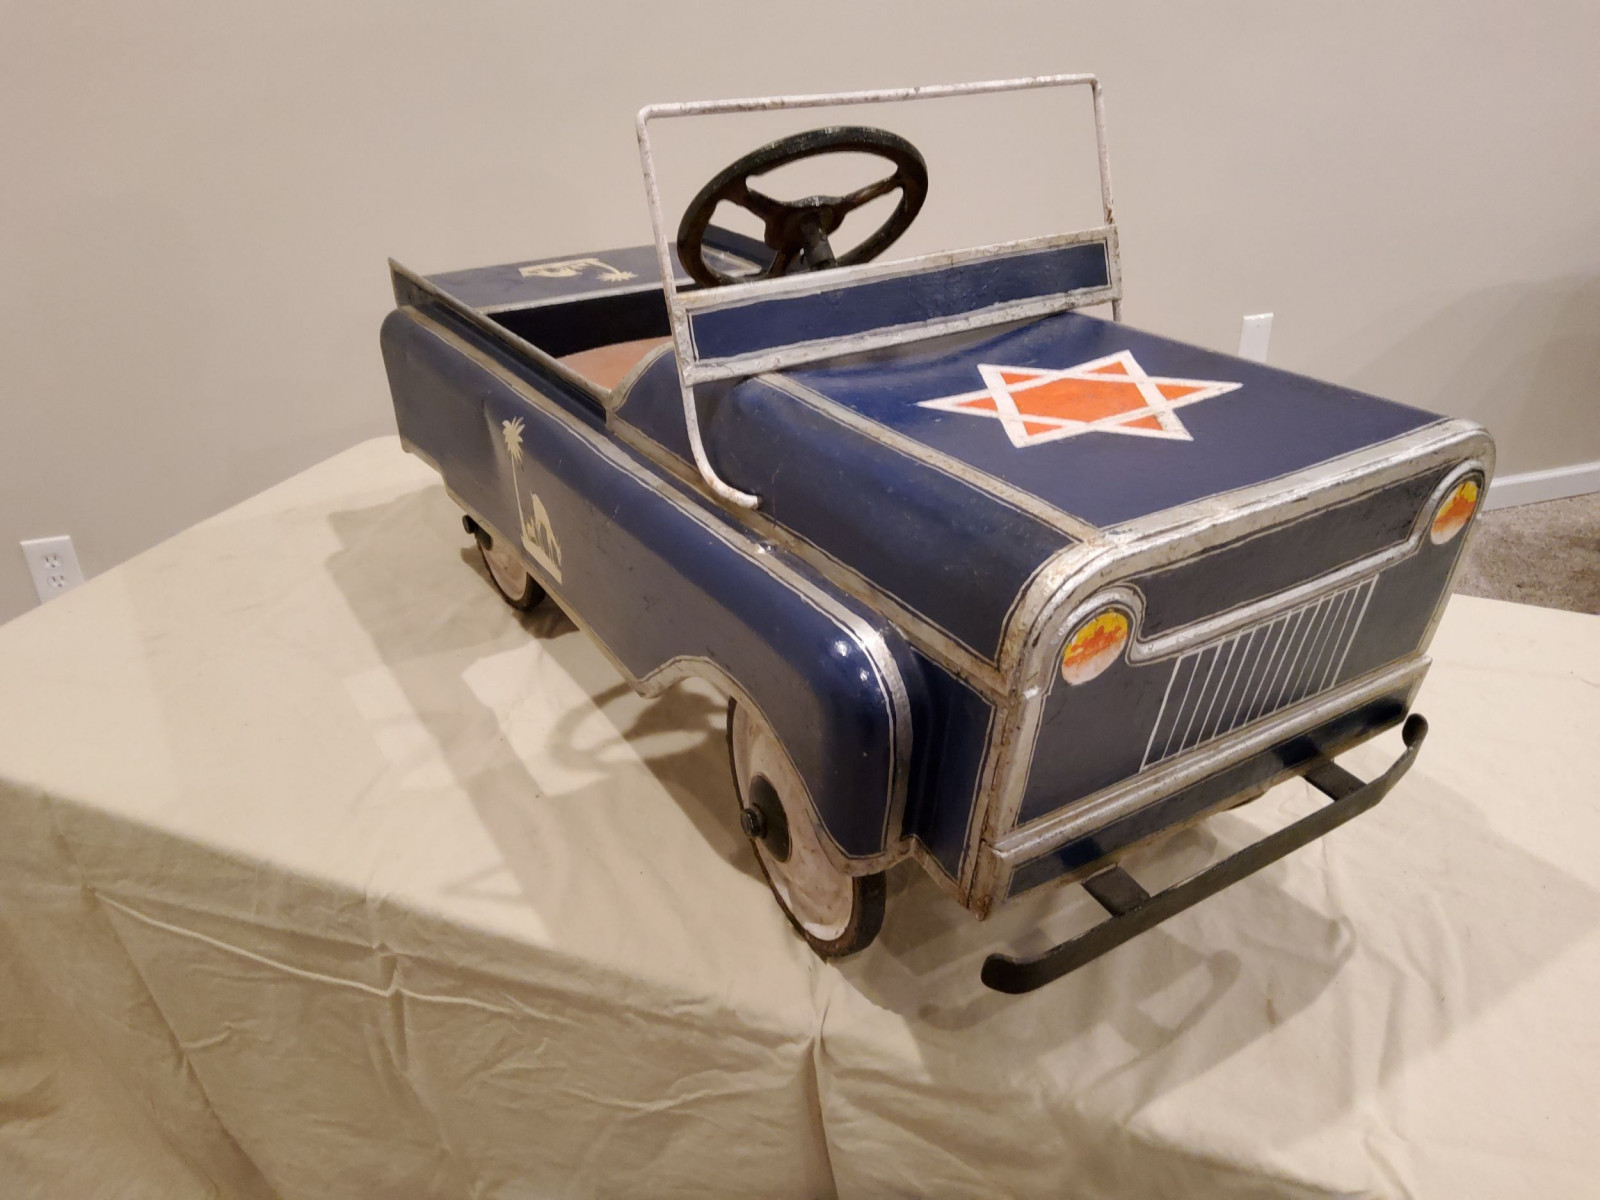 1963 Jeep Pedal Car - Image 5